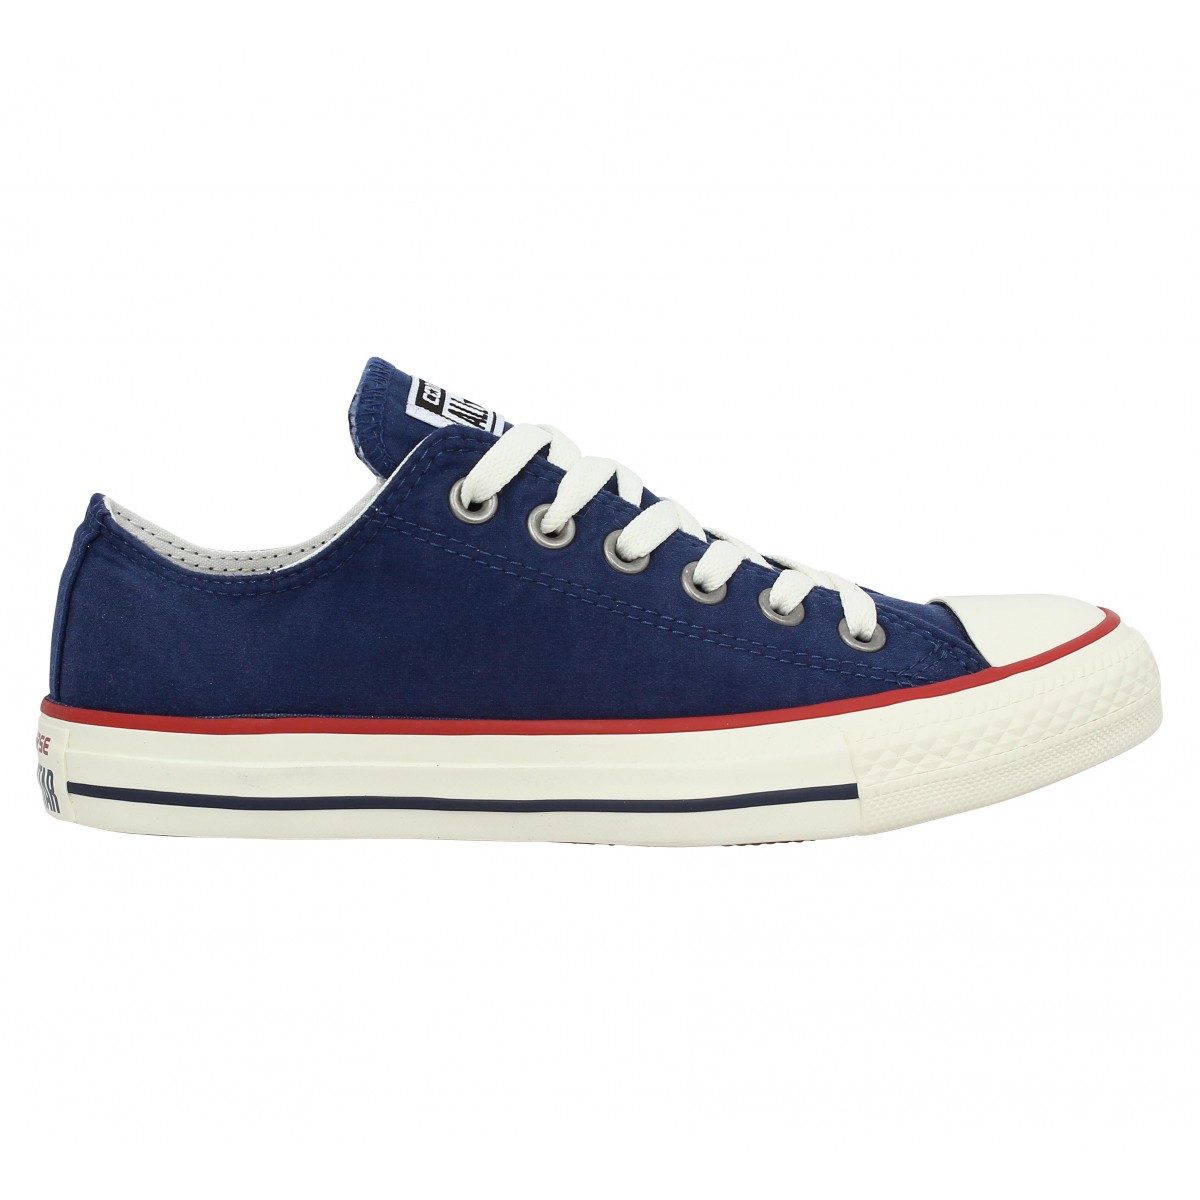 soldes converse chuck taylor all star toile femme navy femme fanny chaussures. Black Bedroom Furniture Sets. Home Design Ideas